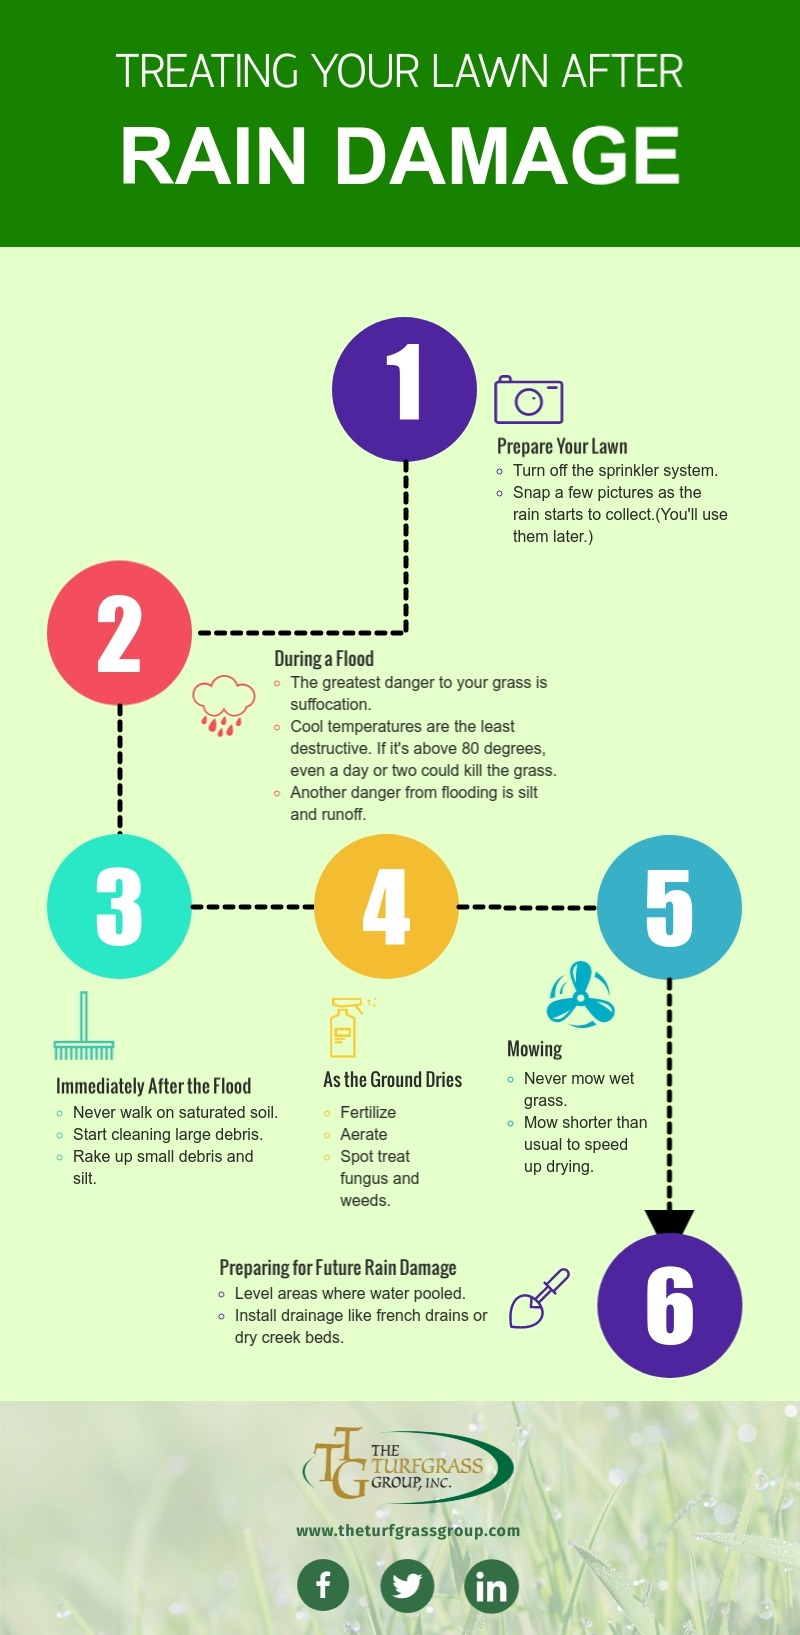 Treating Your Lawn After Rain Damage [infographic]